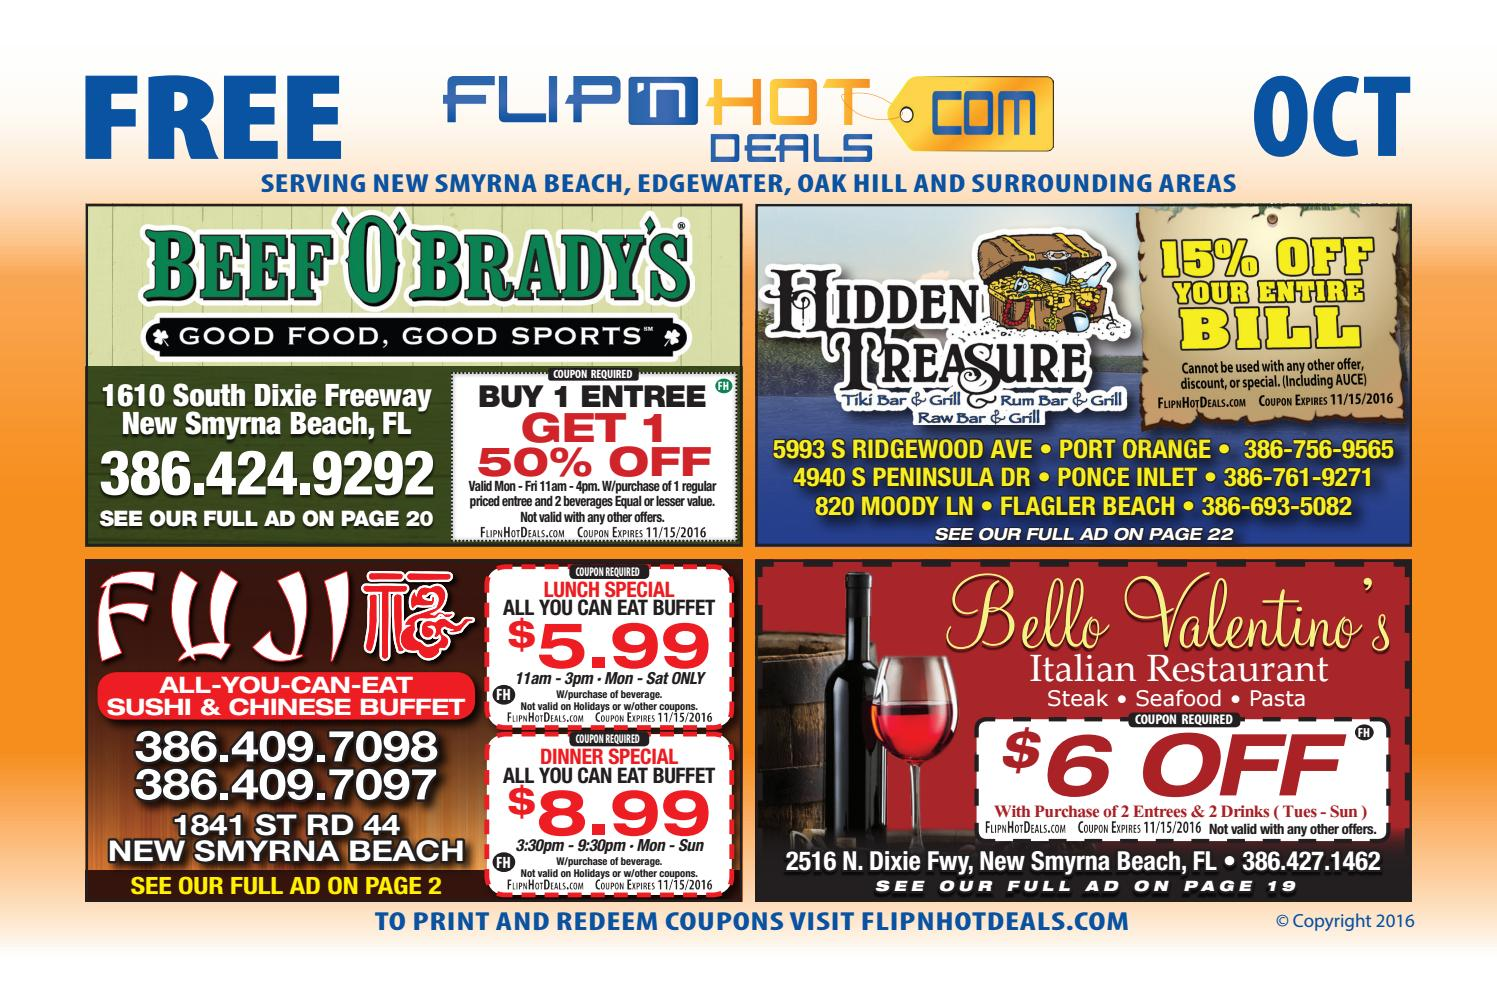 Flipnhot Deals Coupon Book October  New Smyrna Beach Area By Flipnhot Deals Issuu